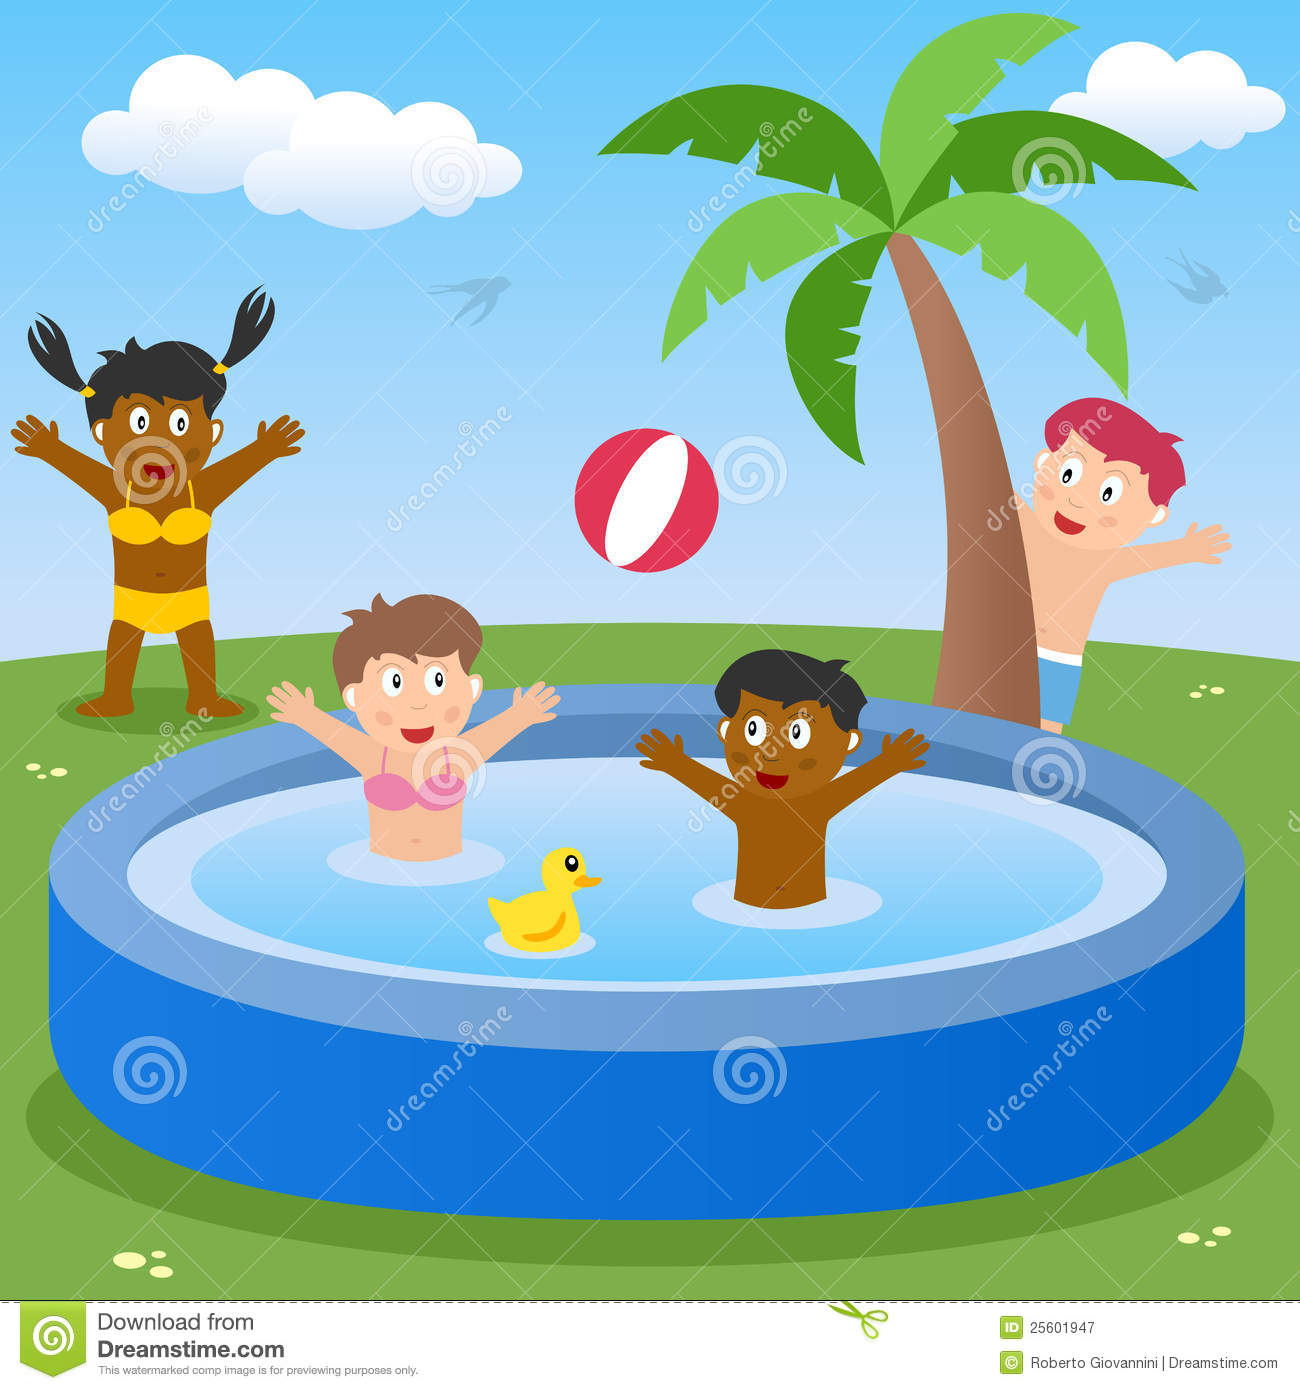 Garden pool clipart 20 free Cliparts | Download images on ...